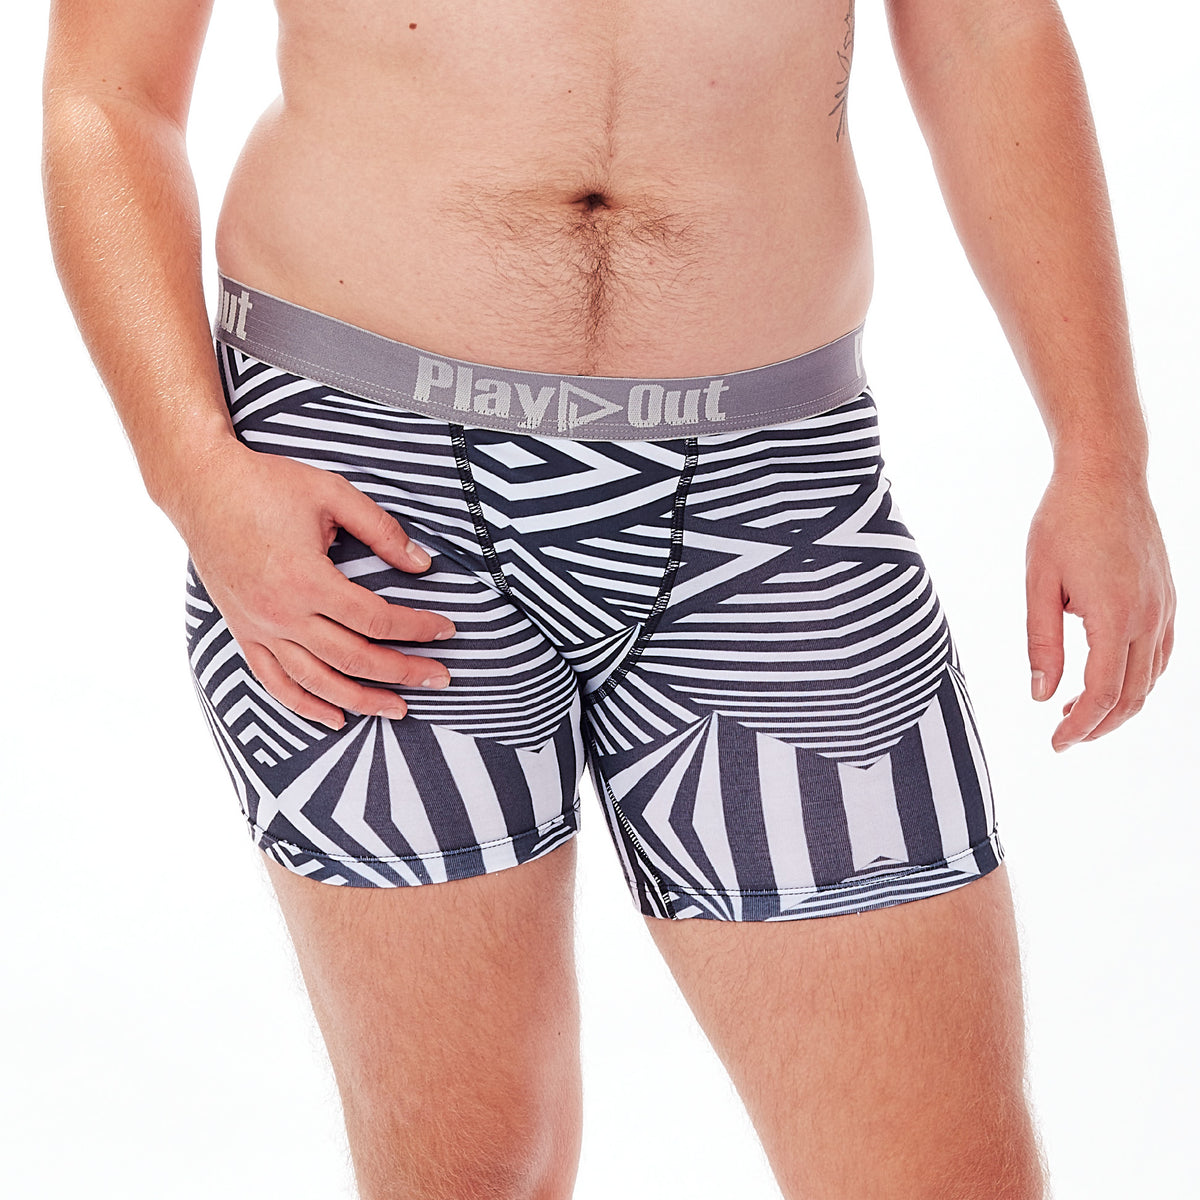 Play Out Apparel Midi Boxer Brief underwear in Mazie black and white print S-5X front